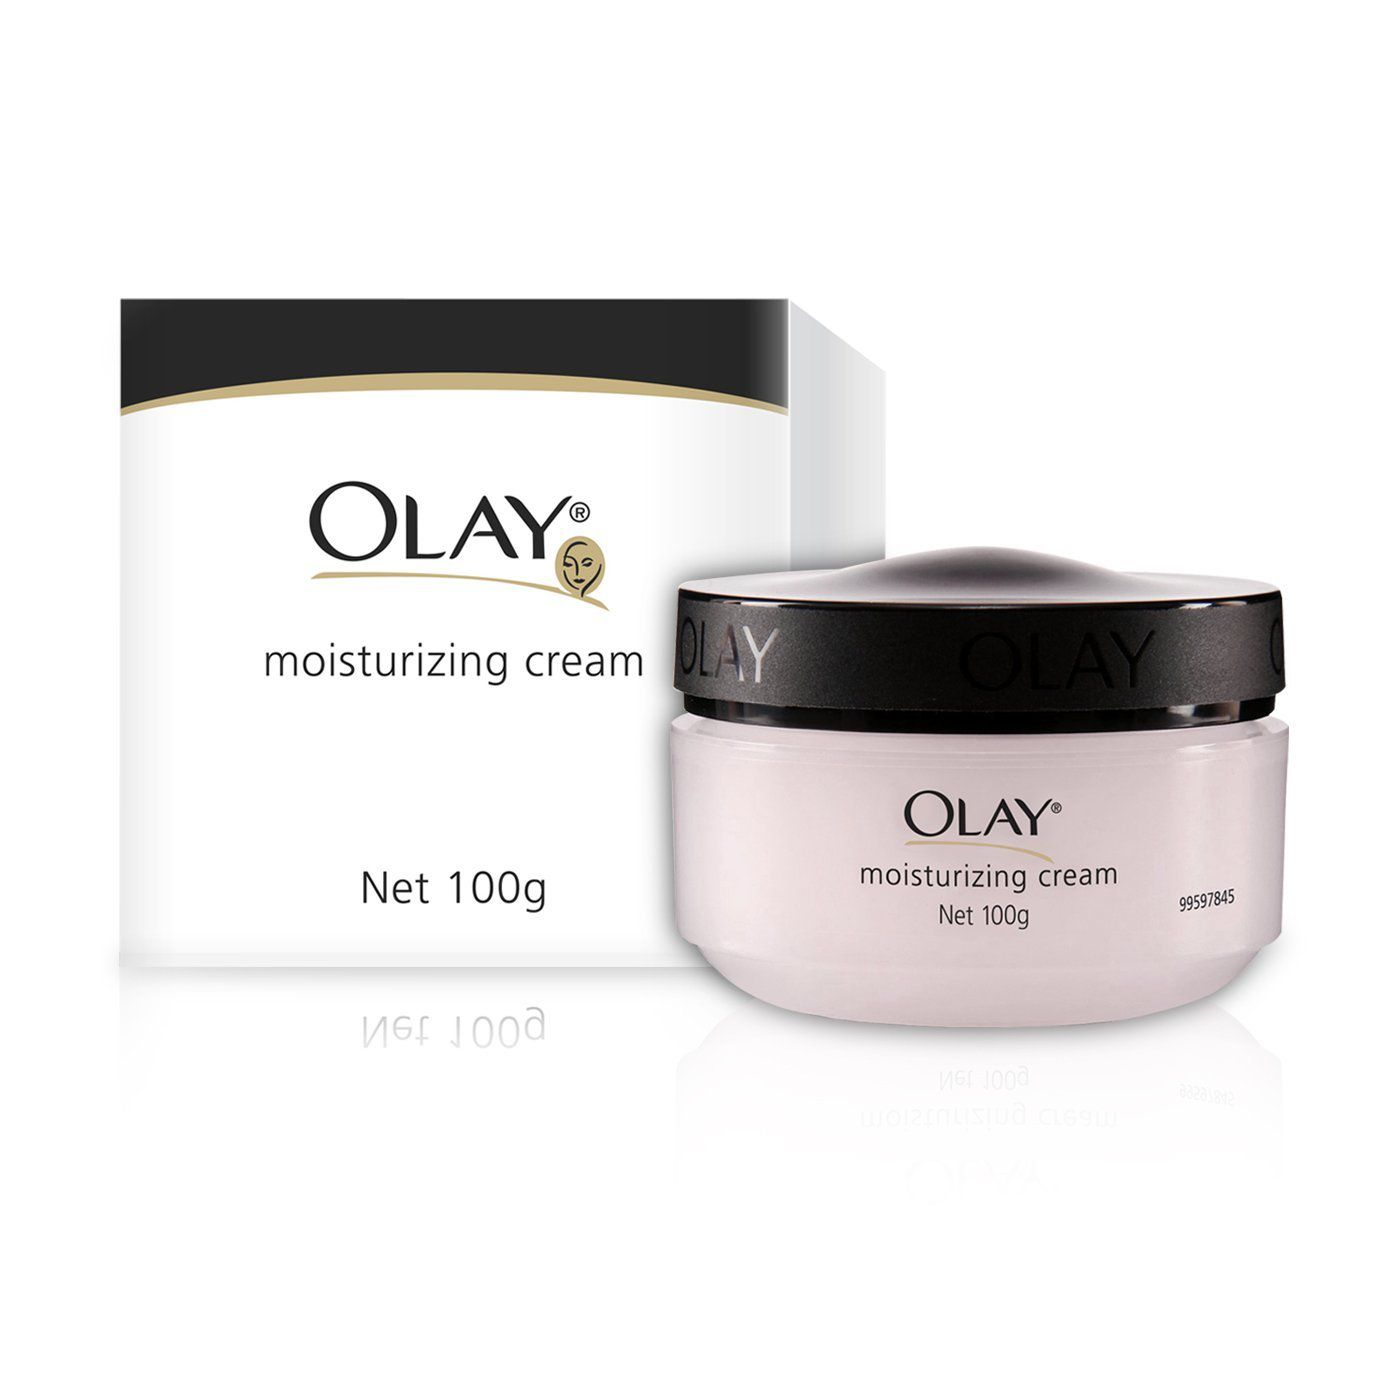 Olay Archives Page 3 Of 4 Order Online Grocery Home Delivery Total Effects Day Cream Normal Spf 15 8g 29 Off